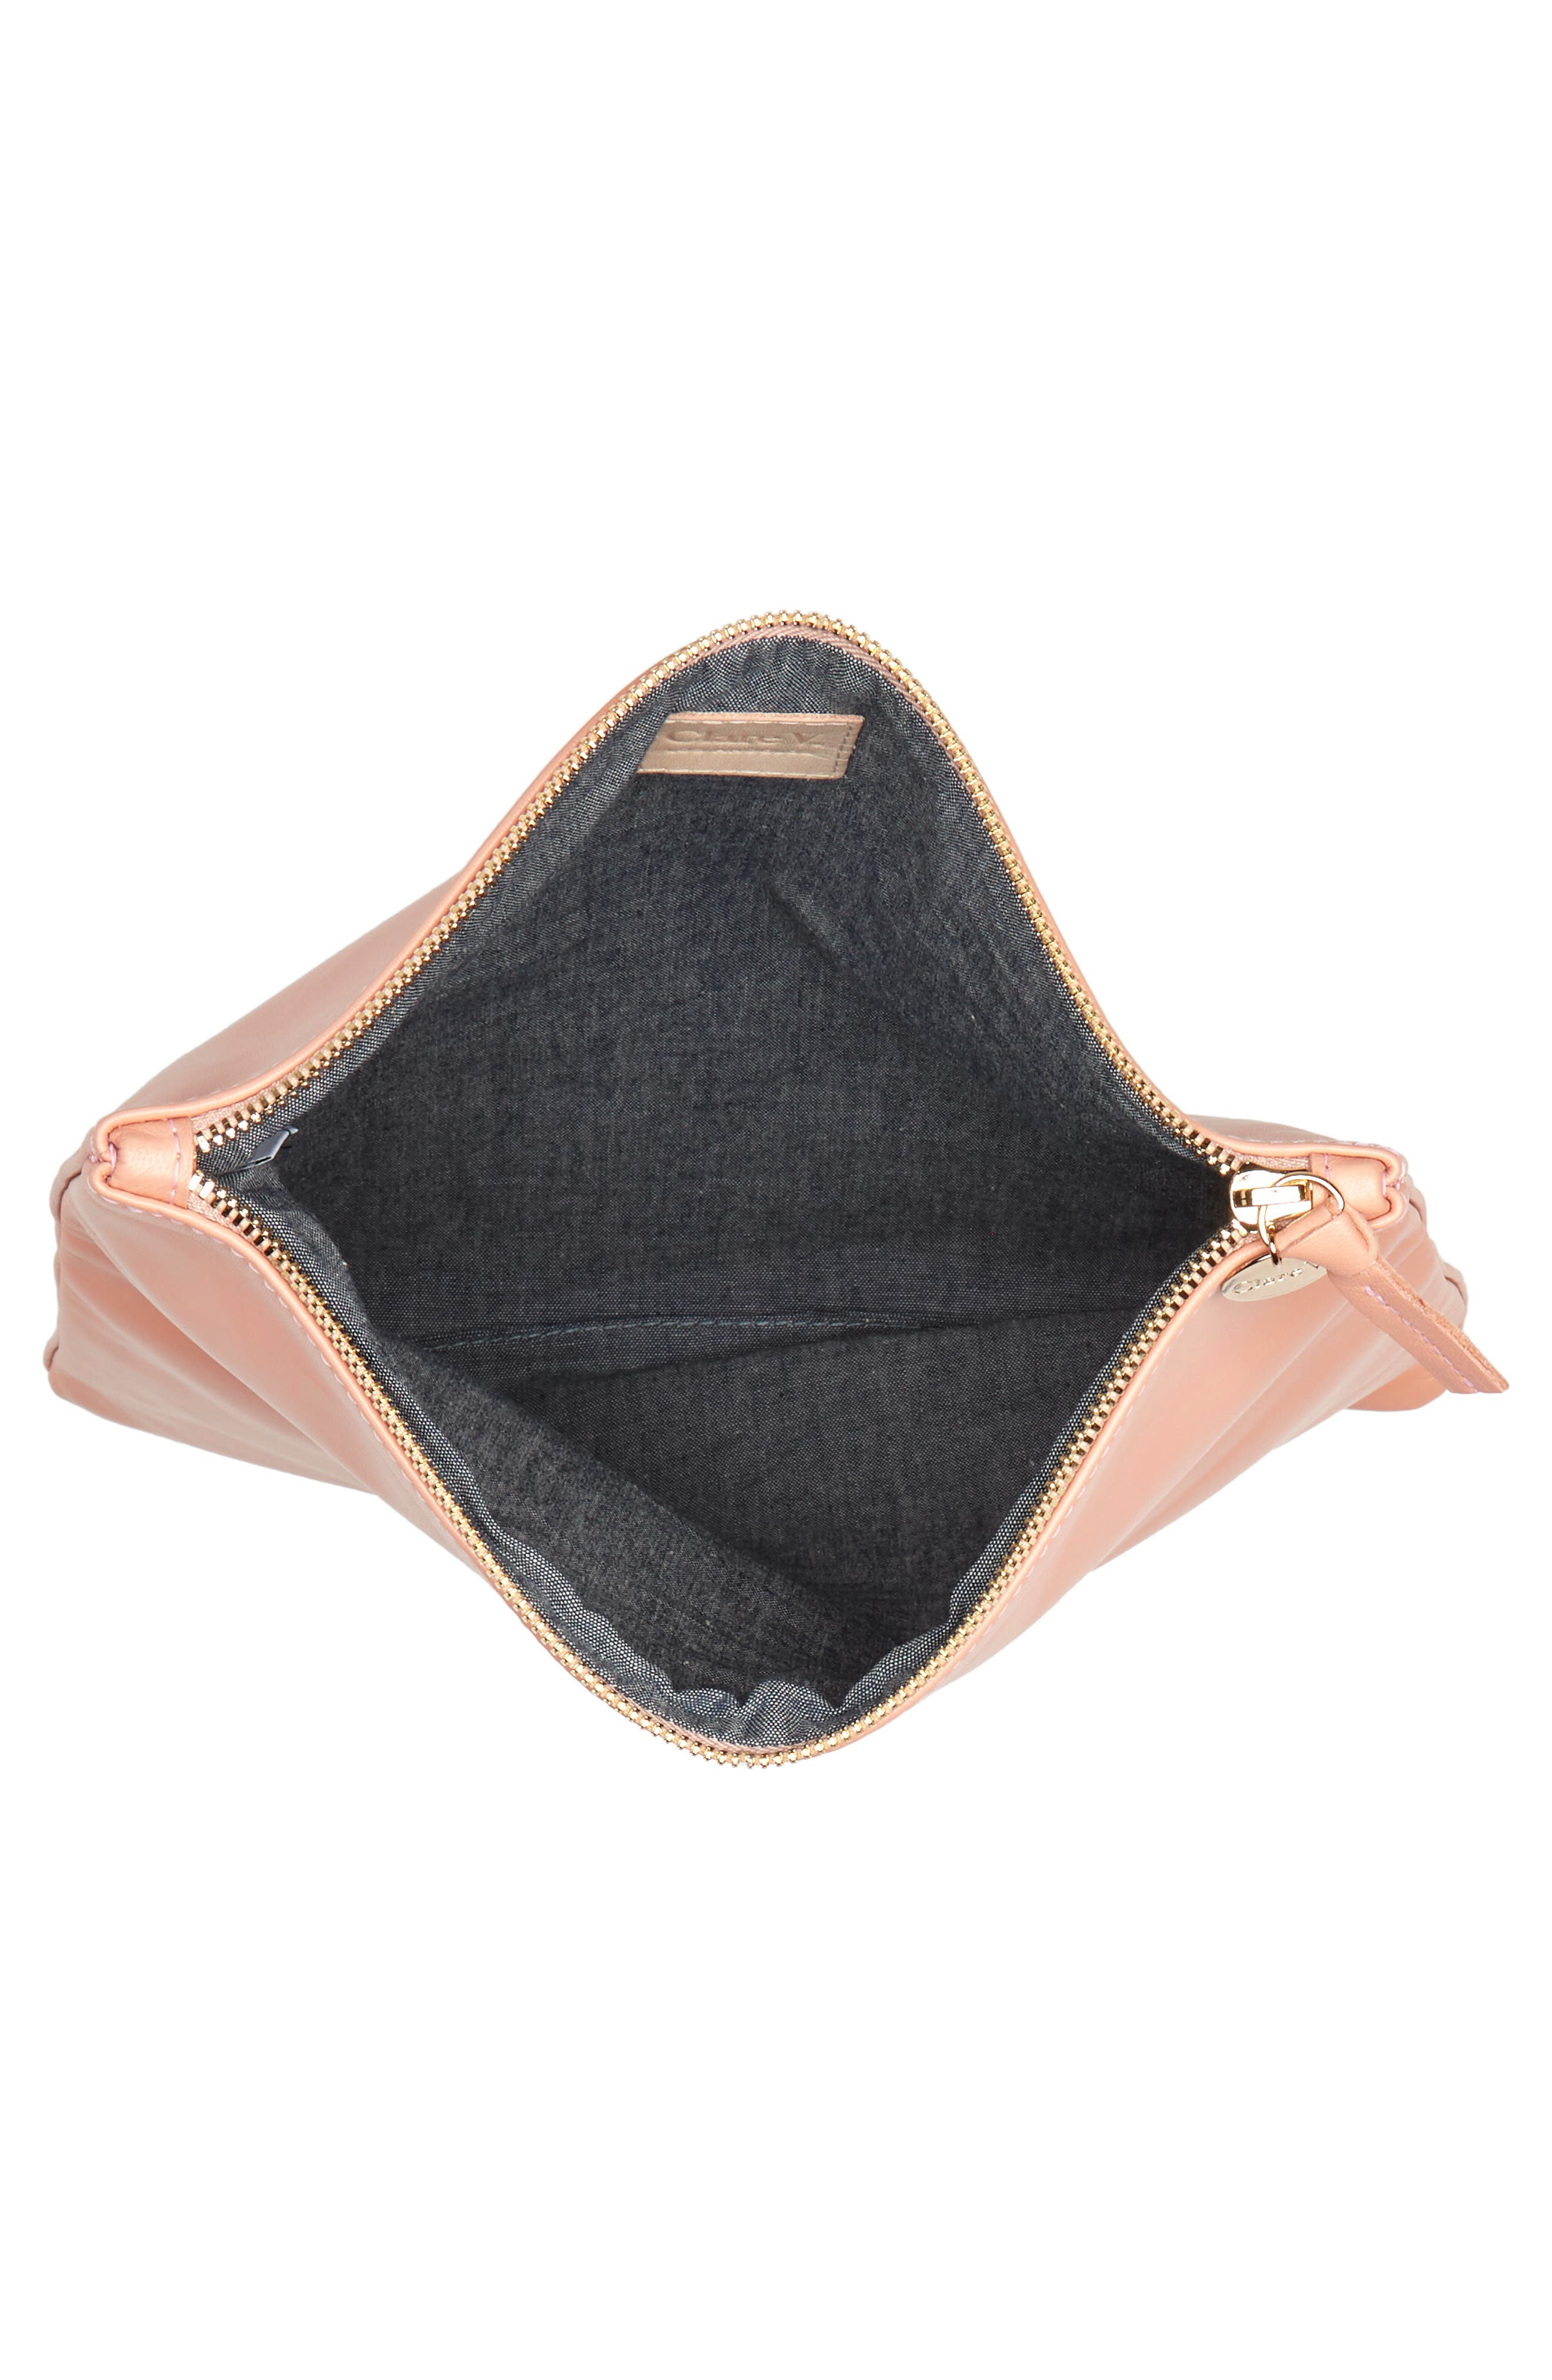 Leather Foldover Clutch,                             Alternate thumbnail 3, color,                             Blush Golfa